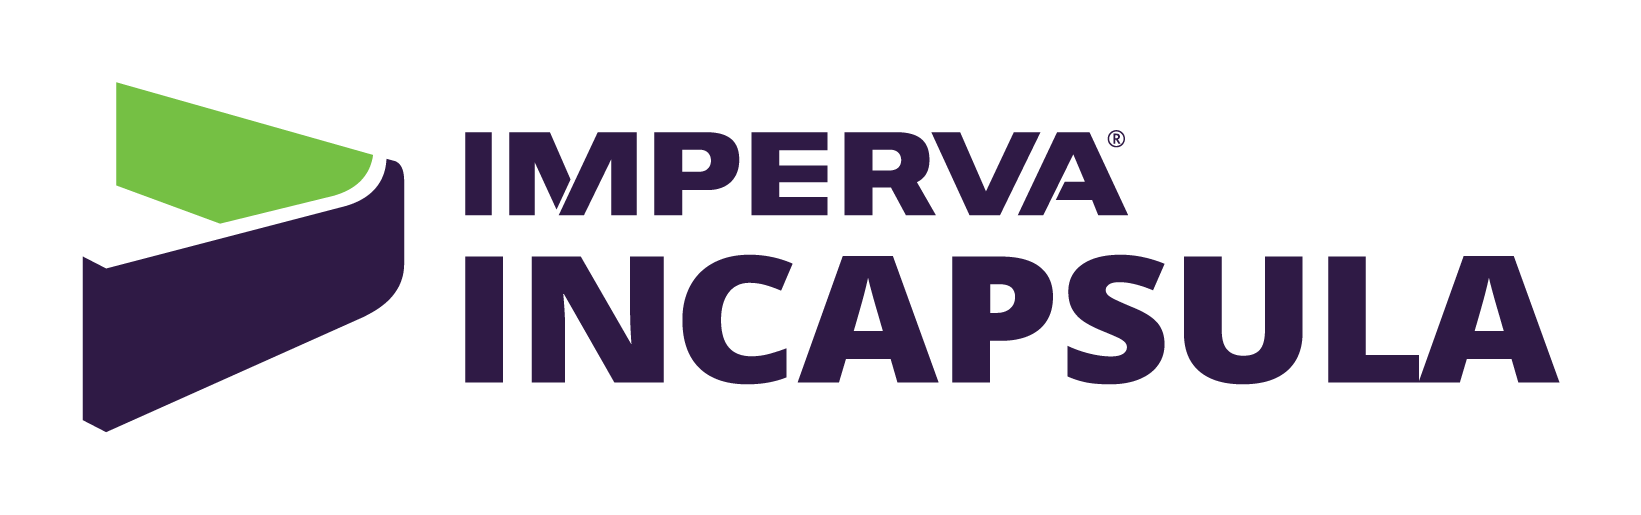 incapsula logo